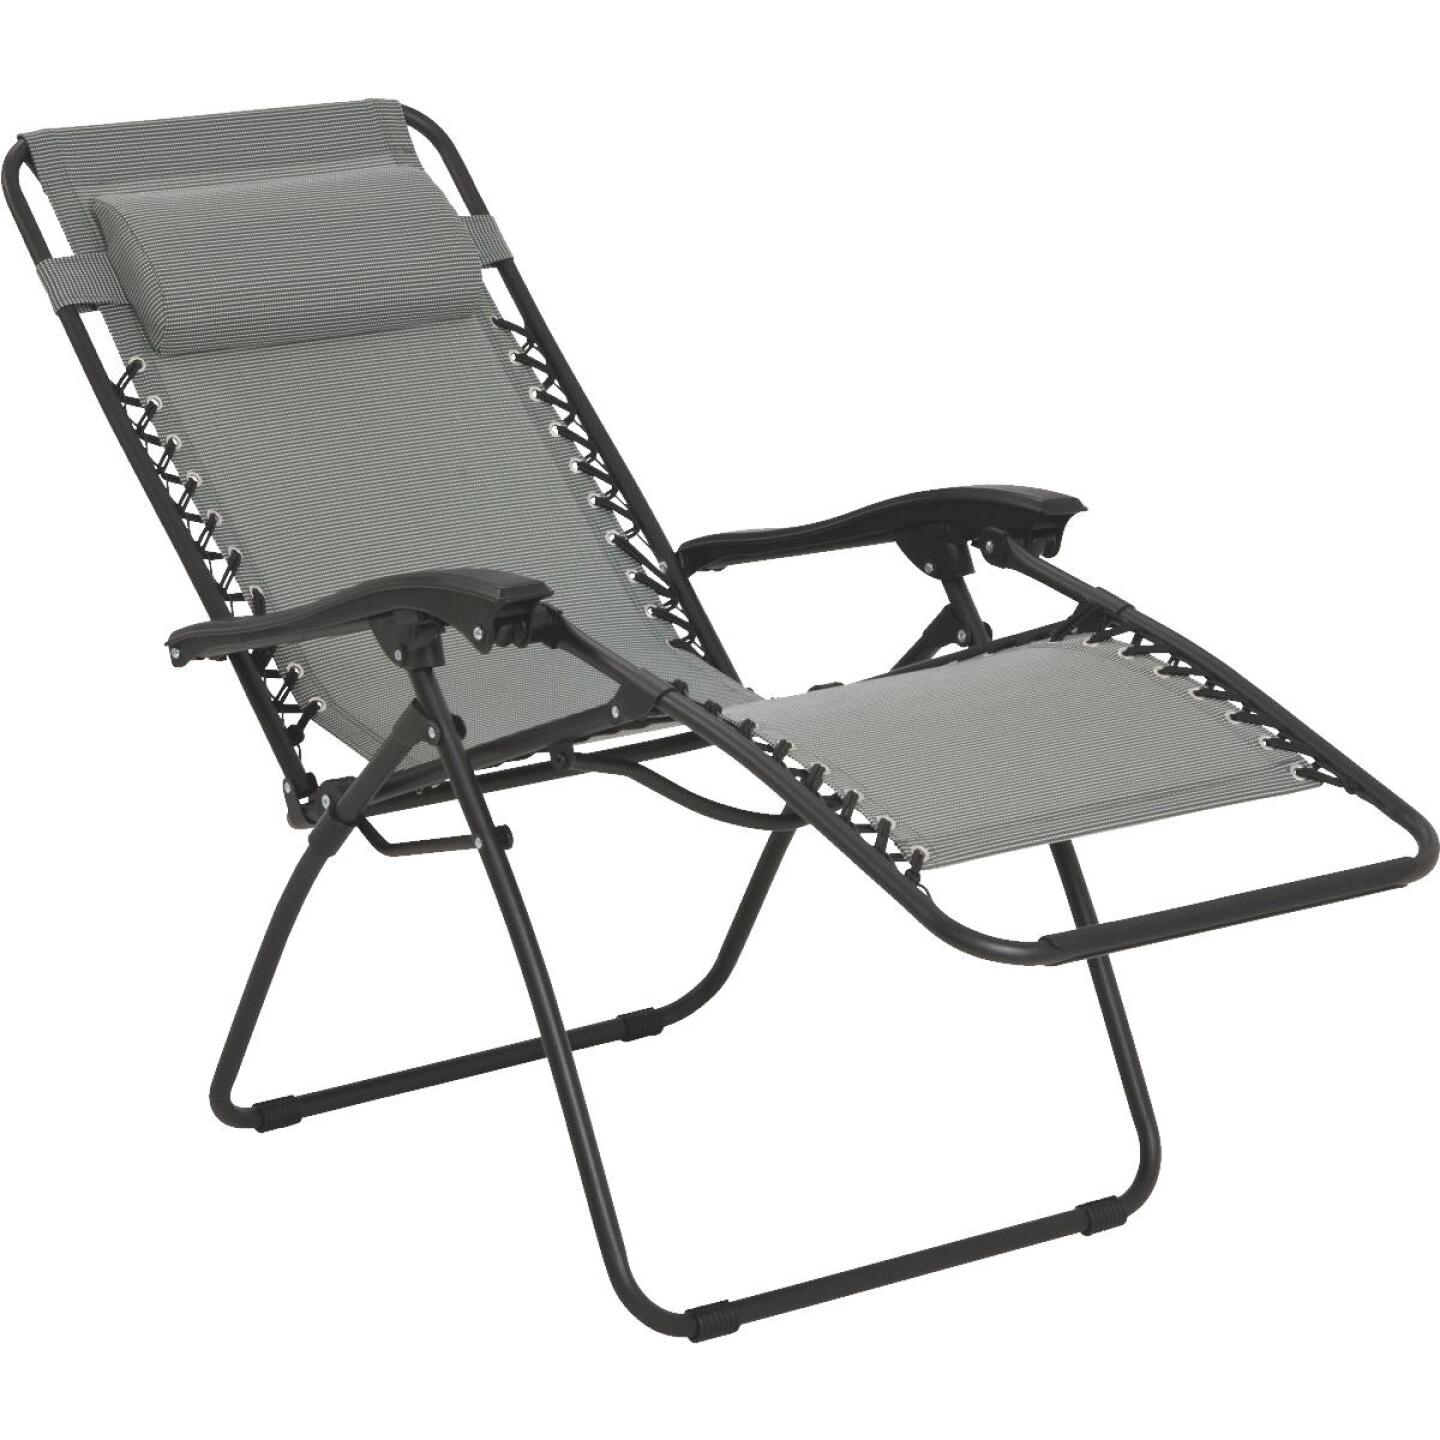 Outdoor Expressions Seville Gray Convertible Lounge Chair Image 2